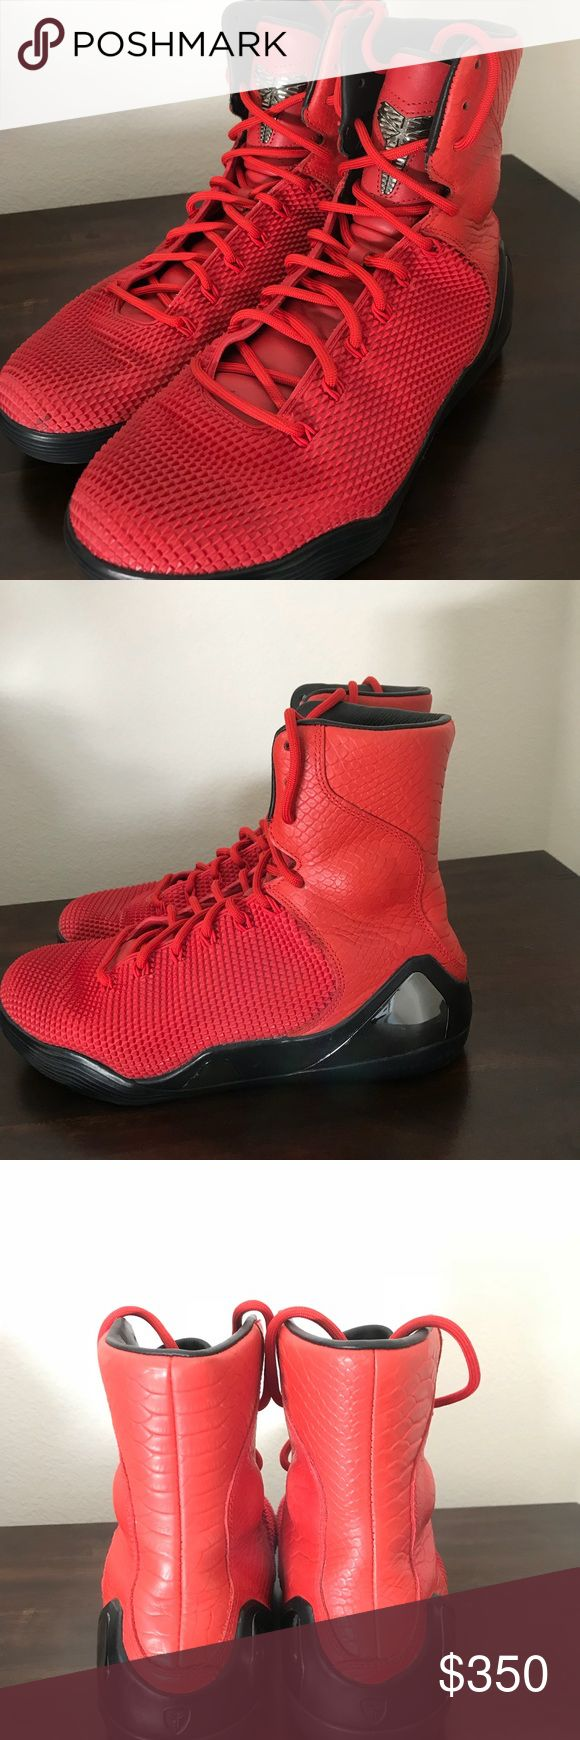 Kobe 9 red October size 9.5 Kobe 9 red October high top size 9.5 without box Nike Shoes Athletic Shoes